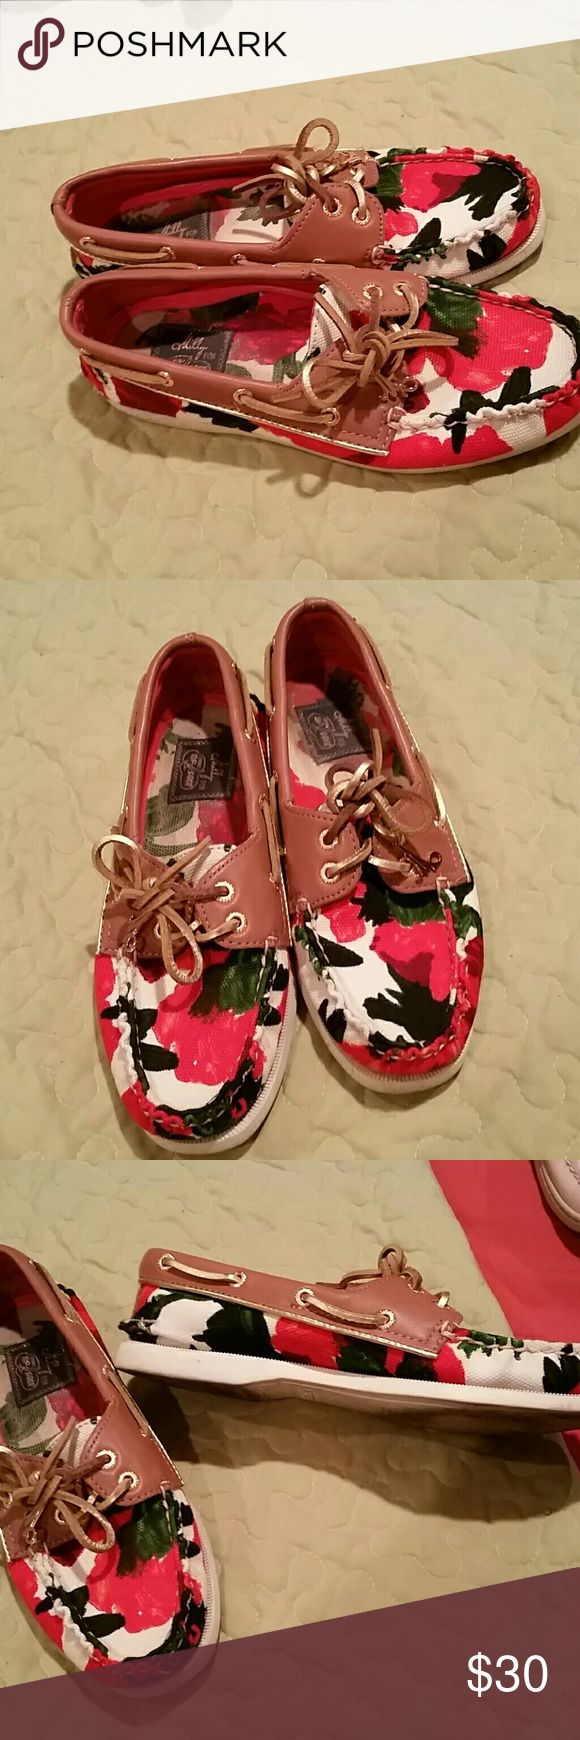 Molly for Sperry top sider moccasins Floral with gold piping and laces.Milly gold tag on laces Sperry Top-Sider Shoes Moccasins